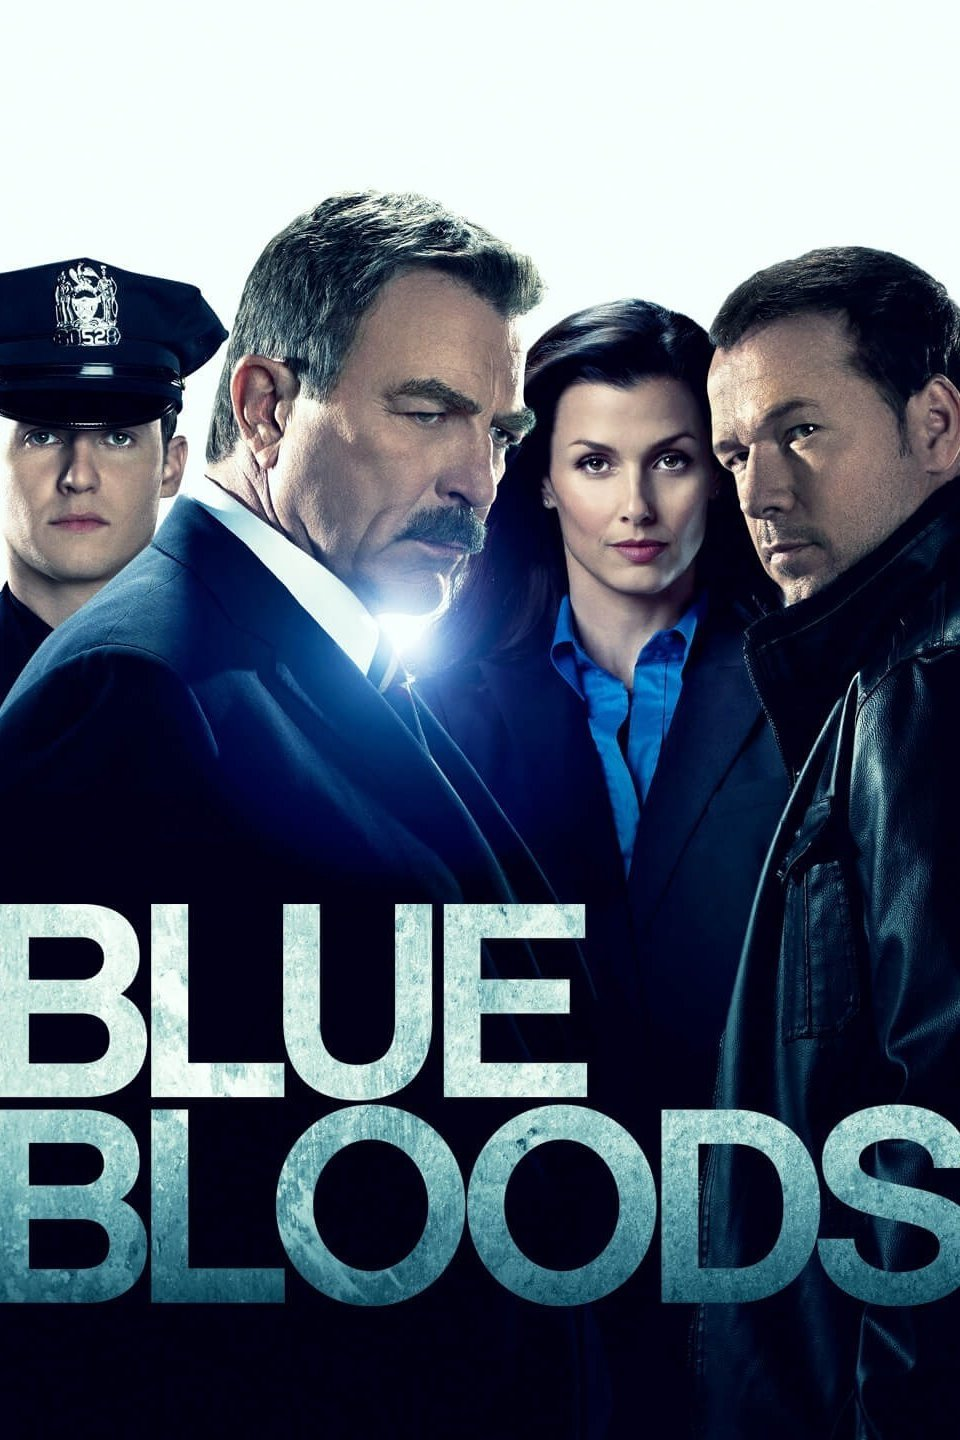 Image result for blue bloods tv show